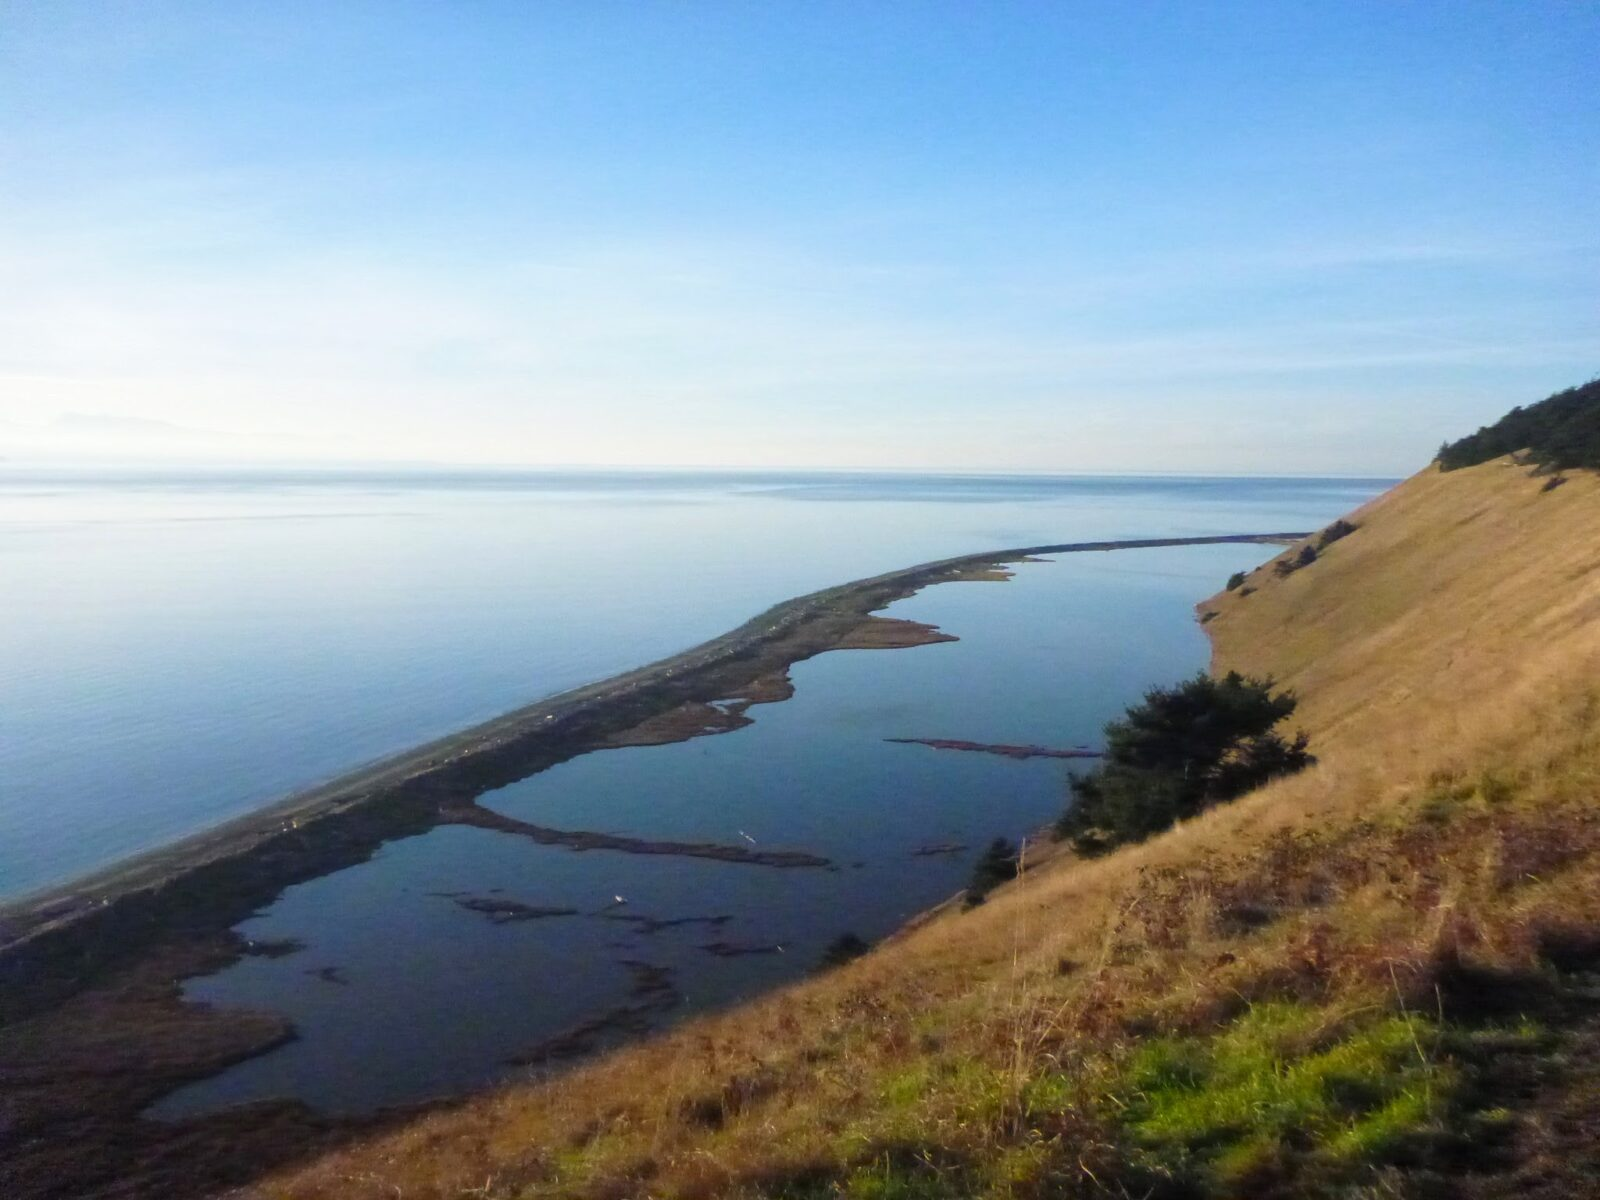 A sandy spit on the beach encircles a lagoon. It is seen from above from a grassy hillside on a Whidbey Island hike. There is blue calm water stretching away into the distance on a sunny blue sky day